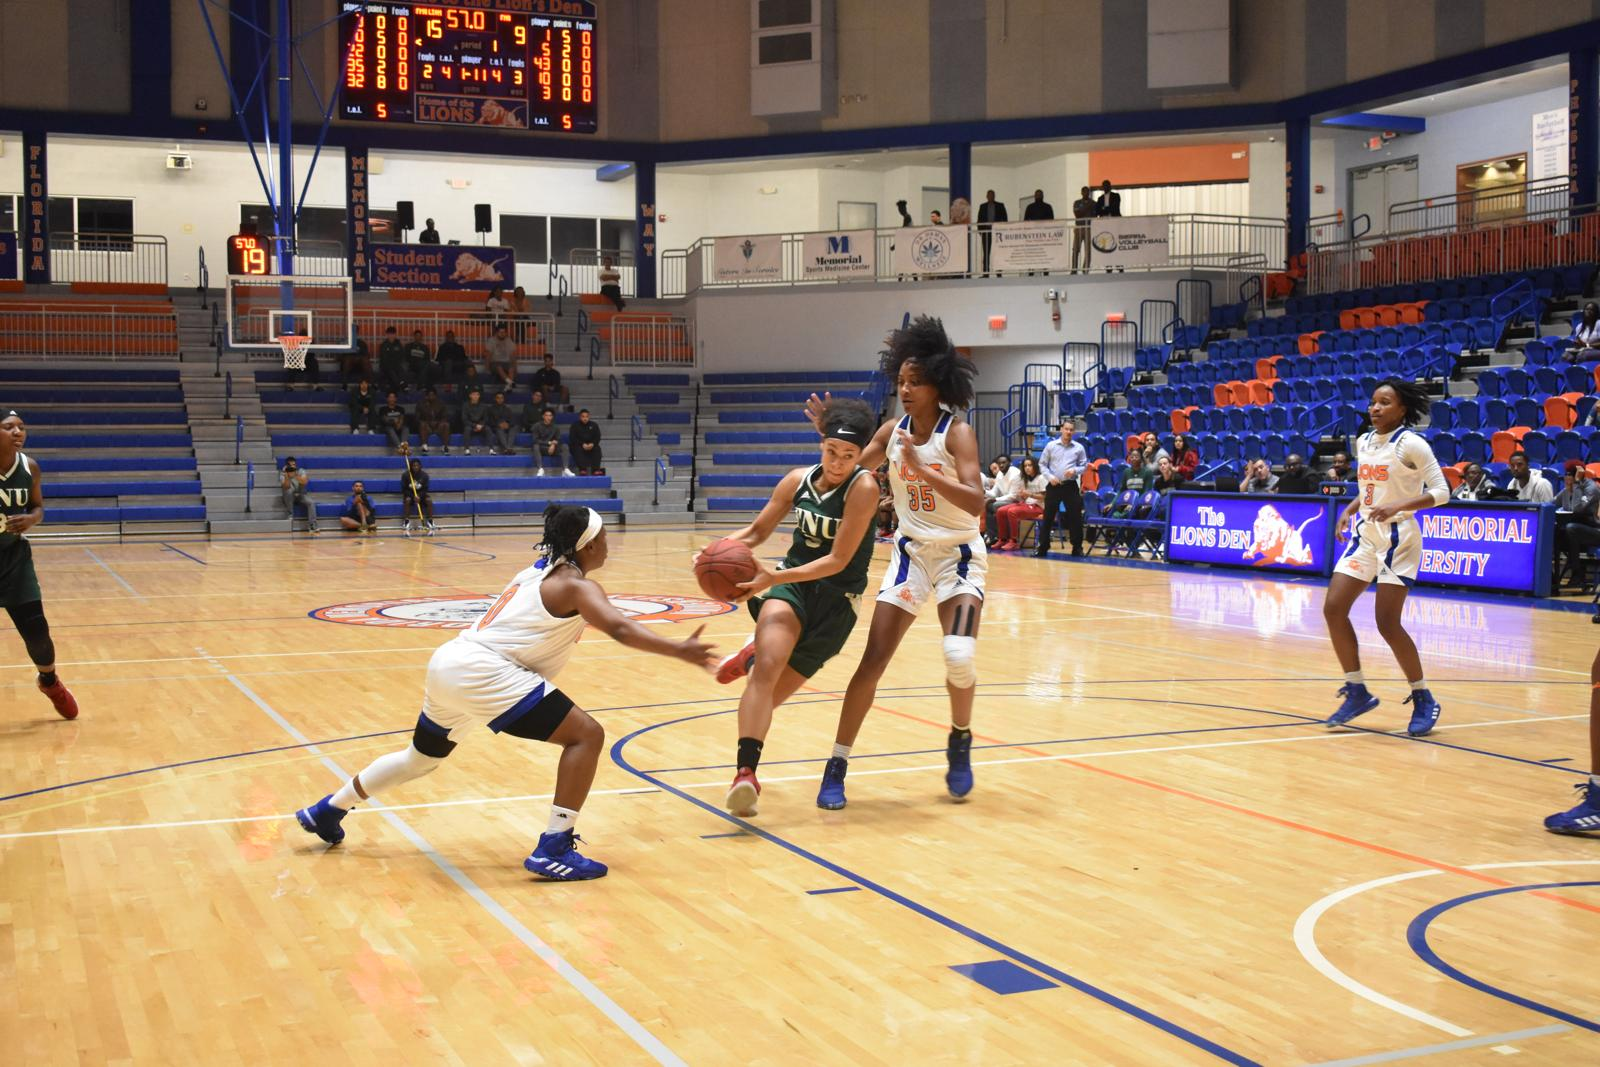 FNU women's basketball player Shannon Rosensteel dribbling the ball during the game against FMU